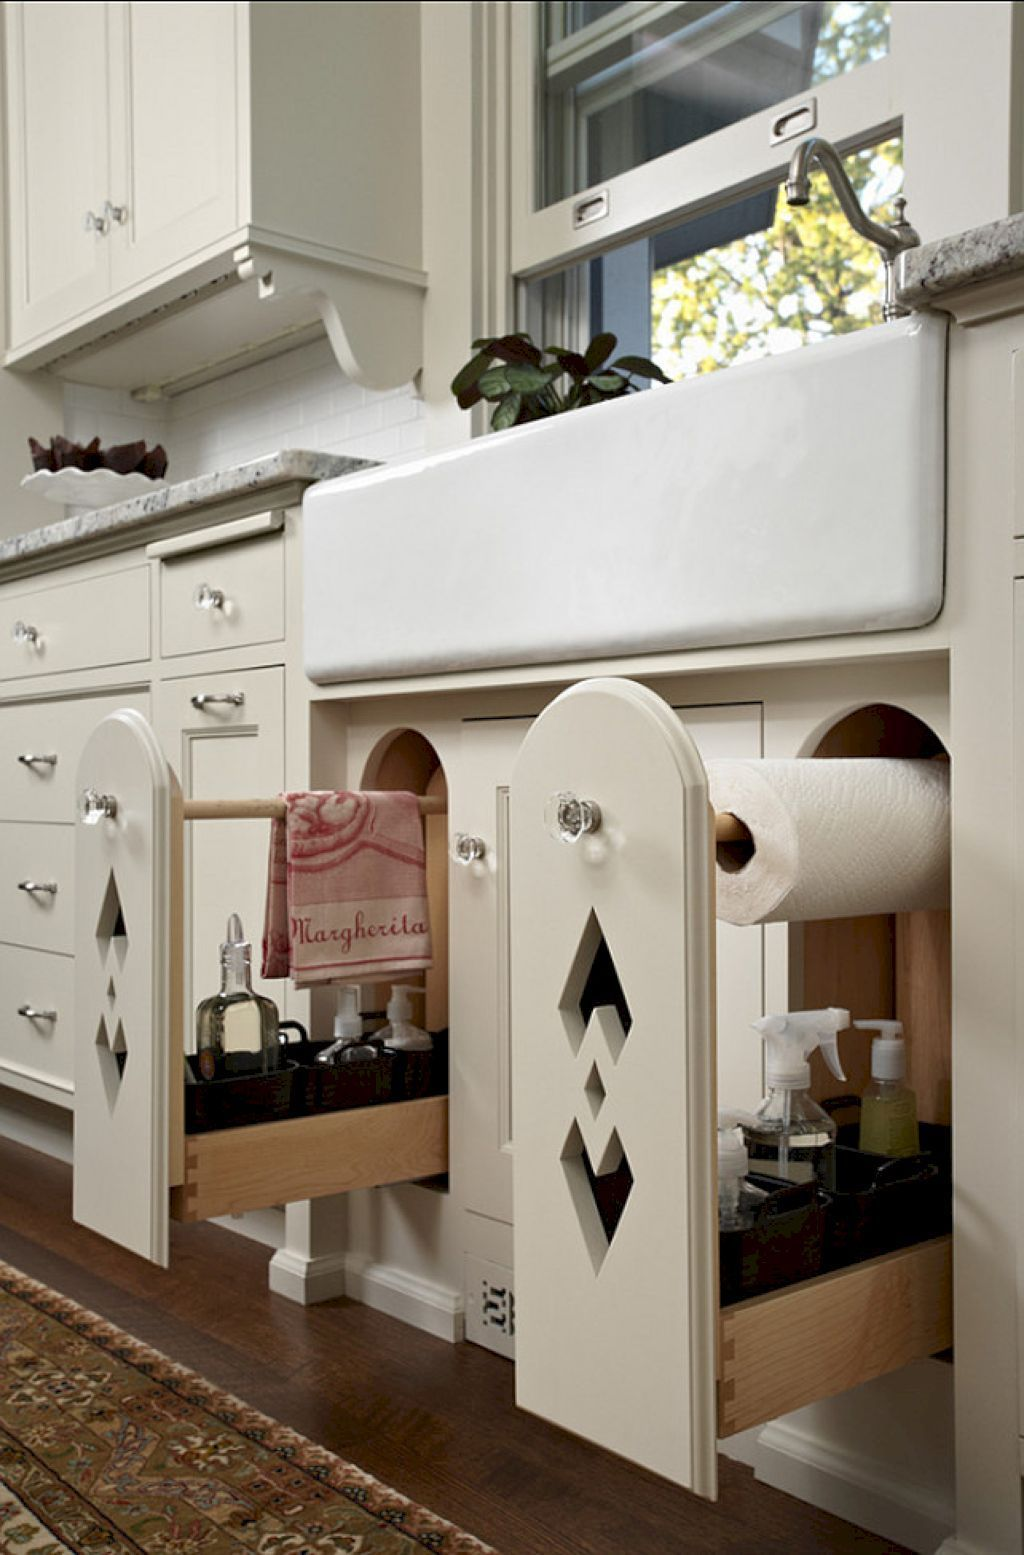 Clever things organized kitchen storage (38 | Clever, Organizing and ...